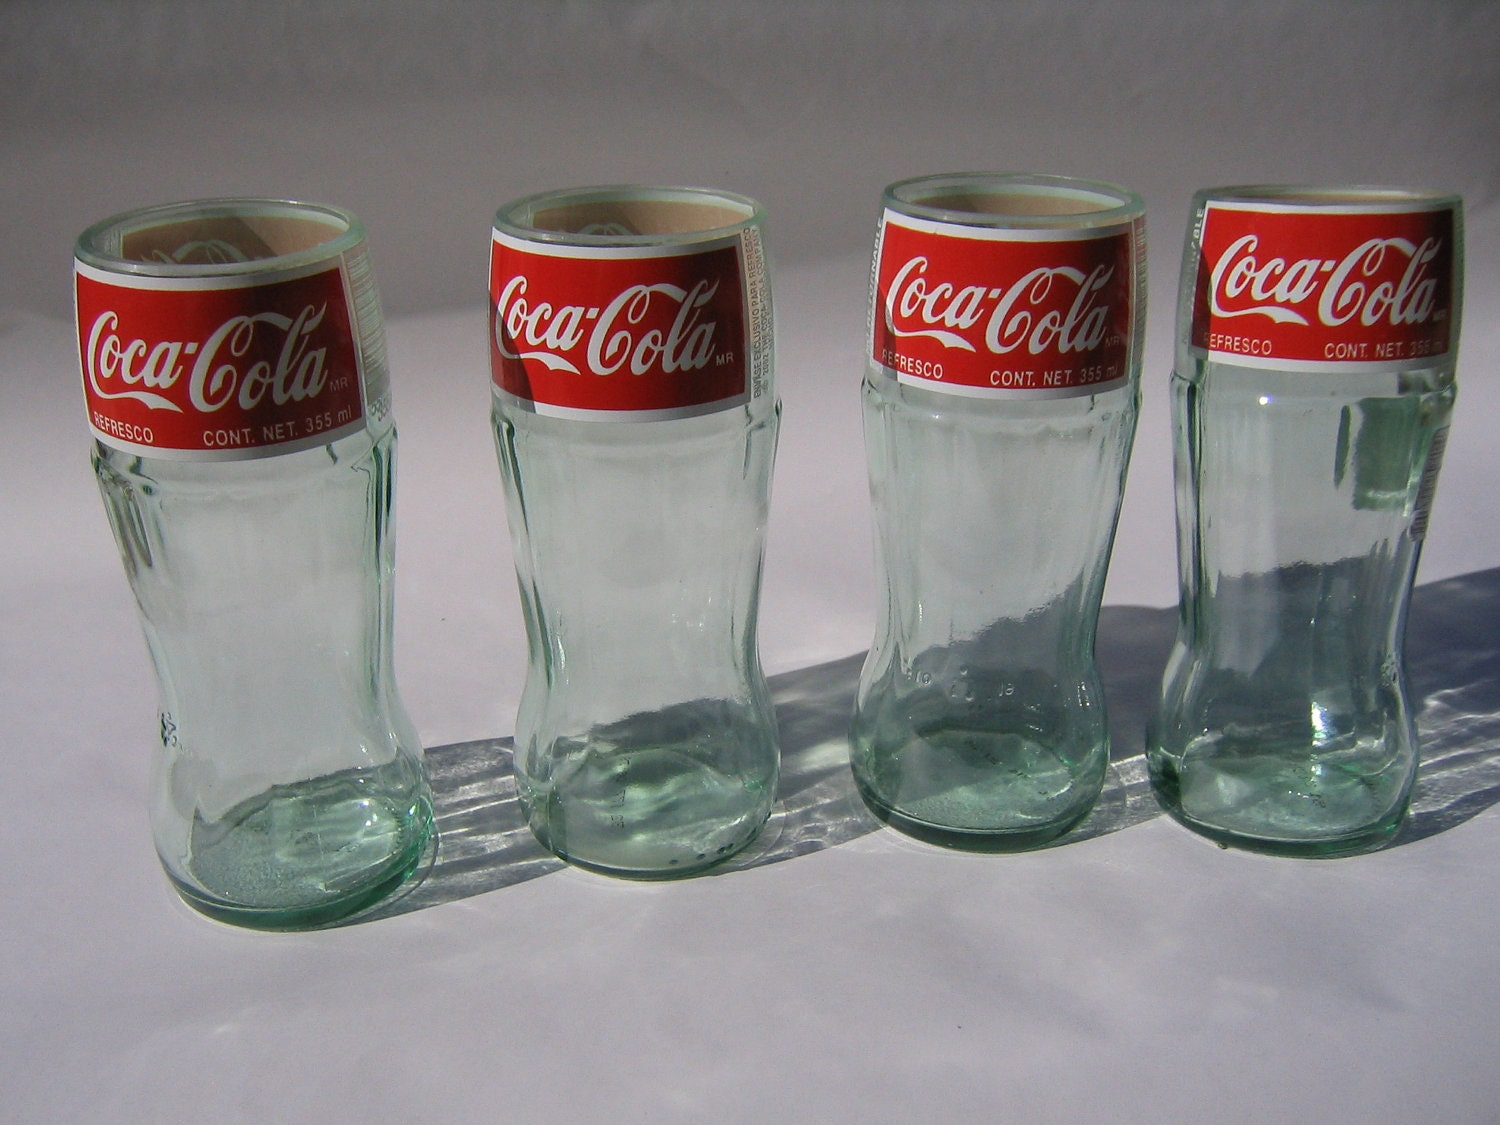 Excellent Recycled Glass Coke Bottles 1500 x 1125 · 281 kB · jpeg